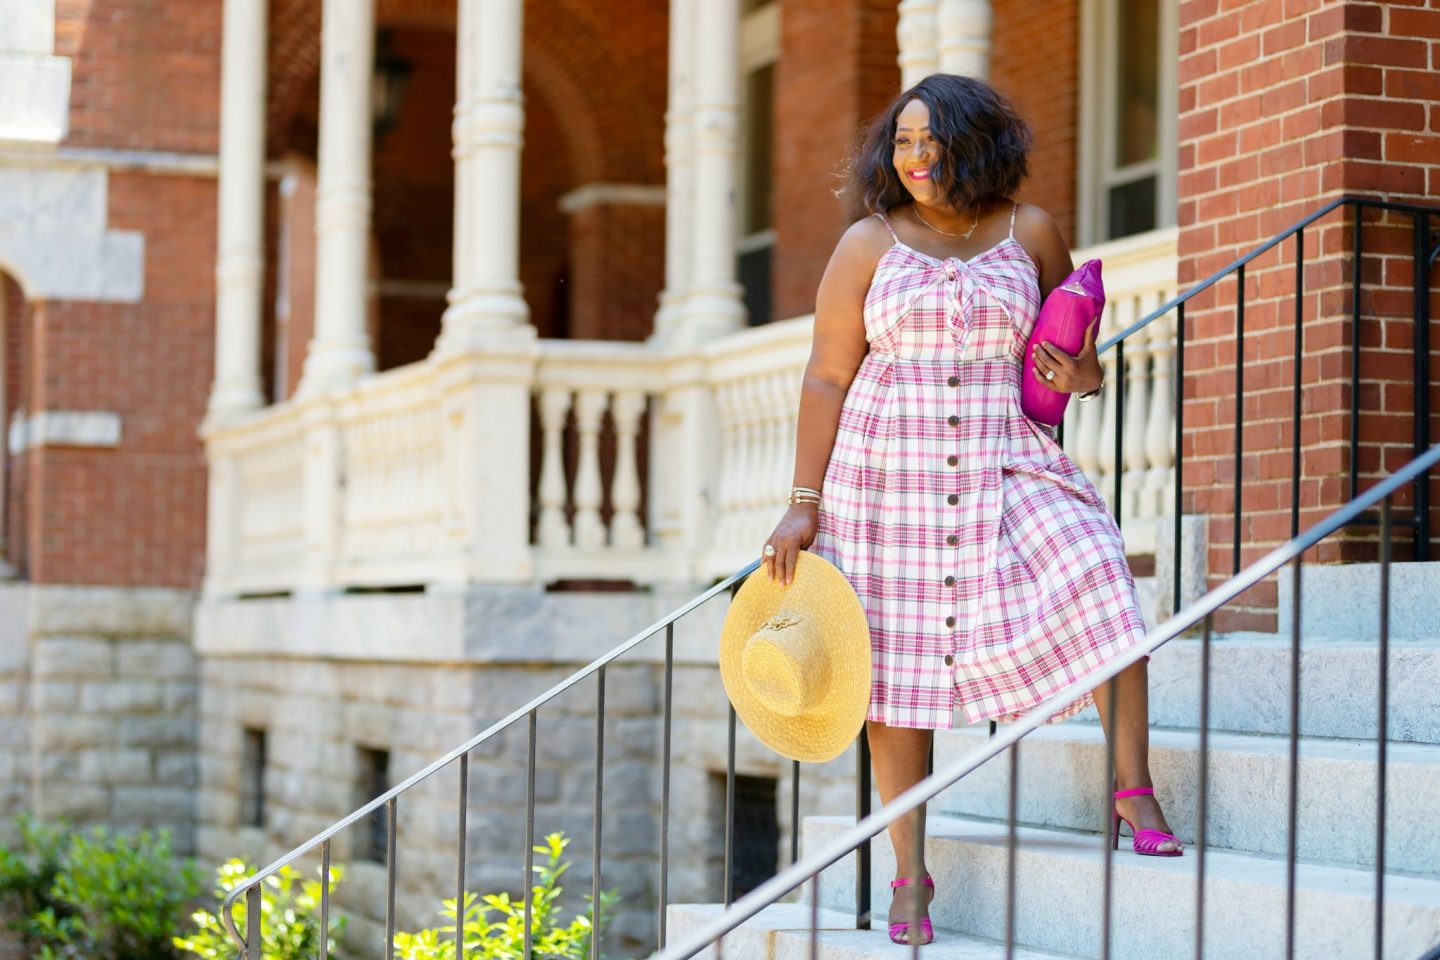 Influencer Nikki Free posing in a plaid sundress standing on stairs holding pink clutch and straw sunhat